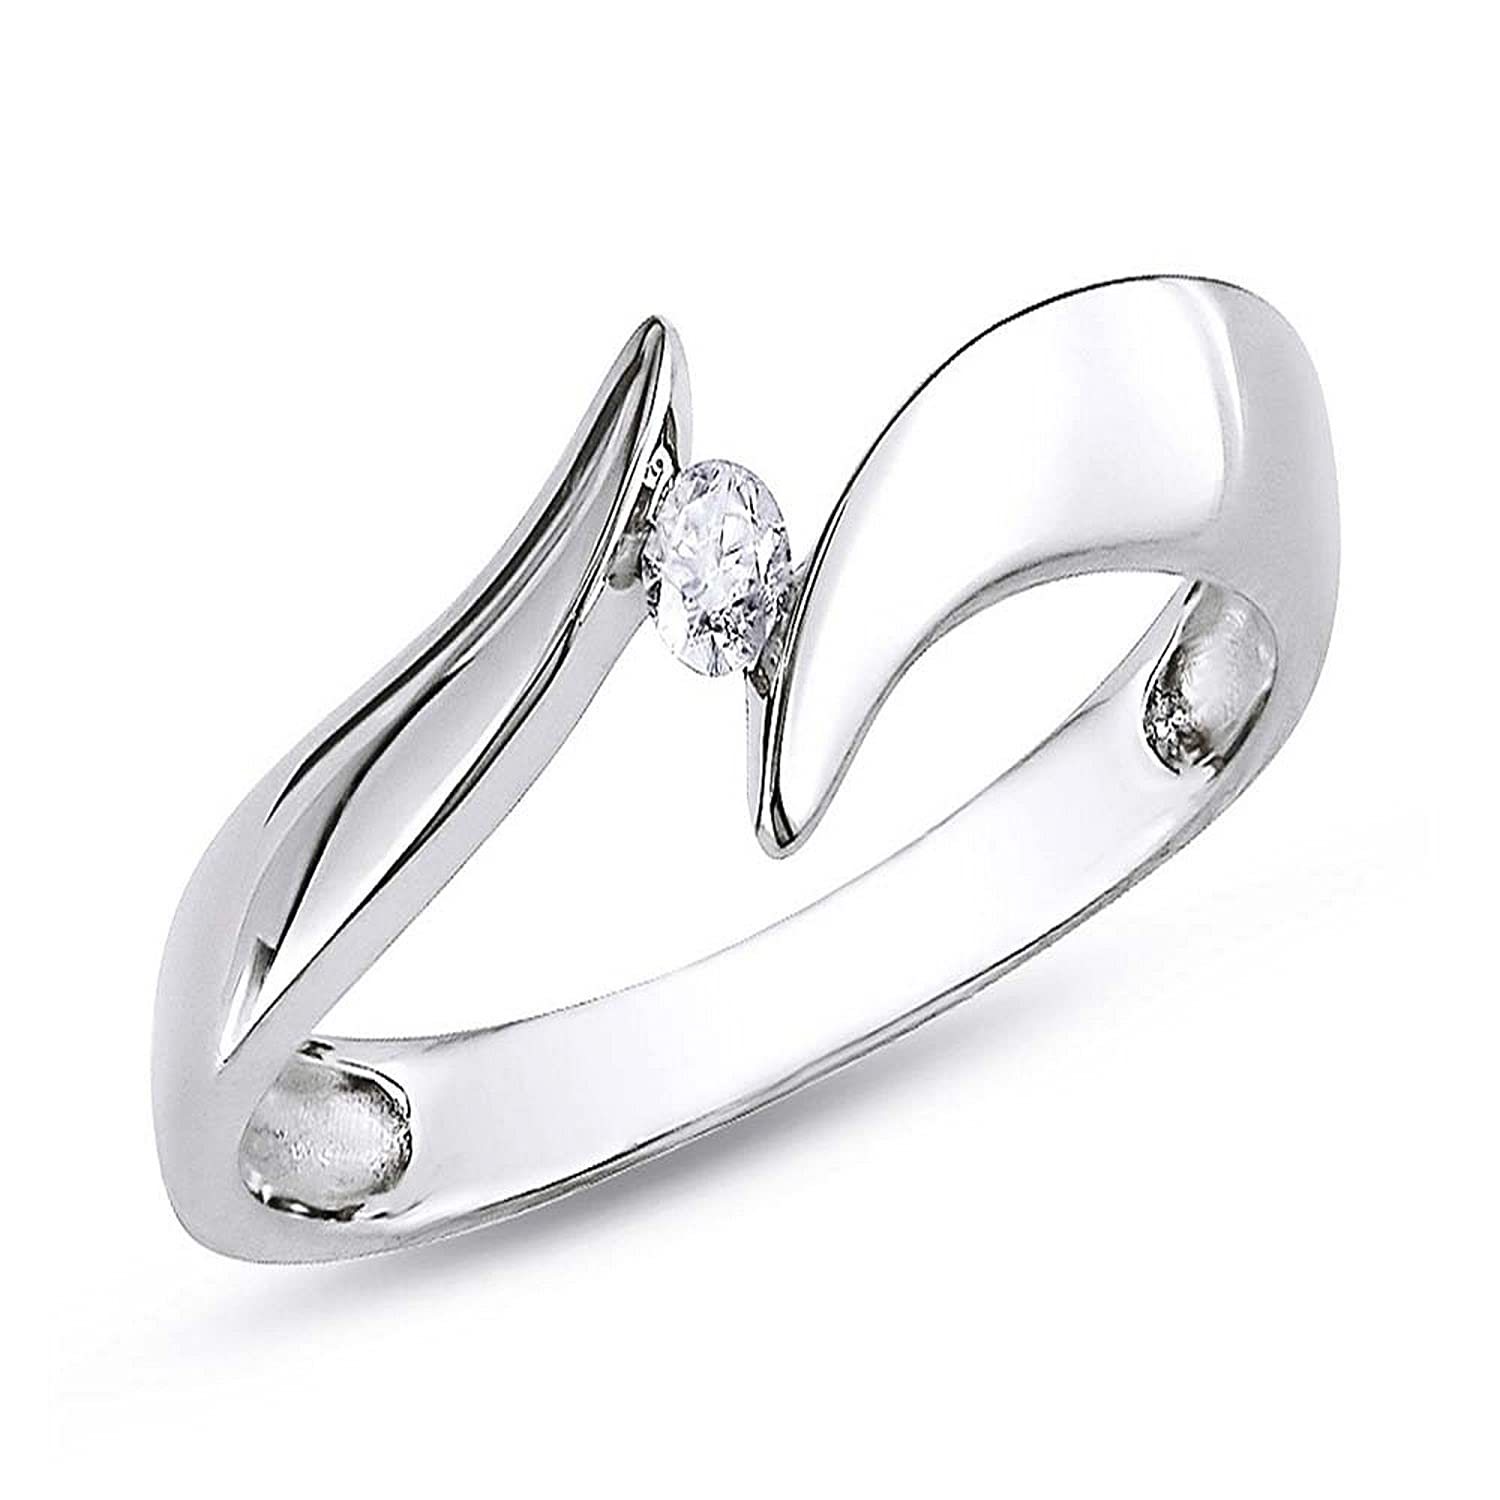 silver watches rings steel zirconia free ring jewelry with product center over shipping tension overstock stainless on diamond orders cubic set